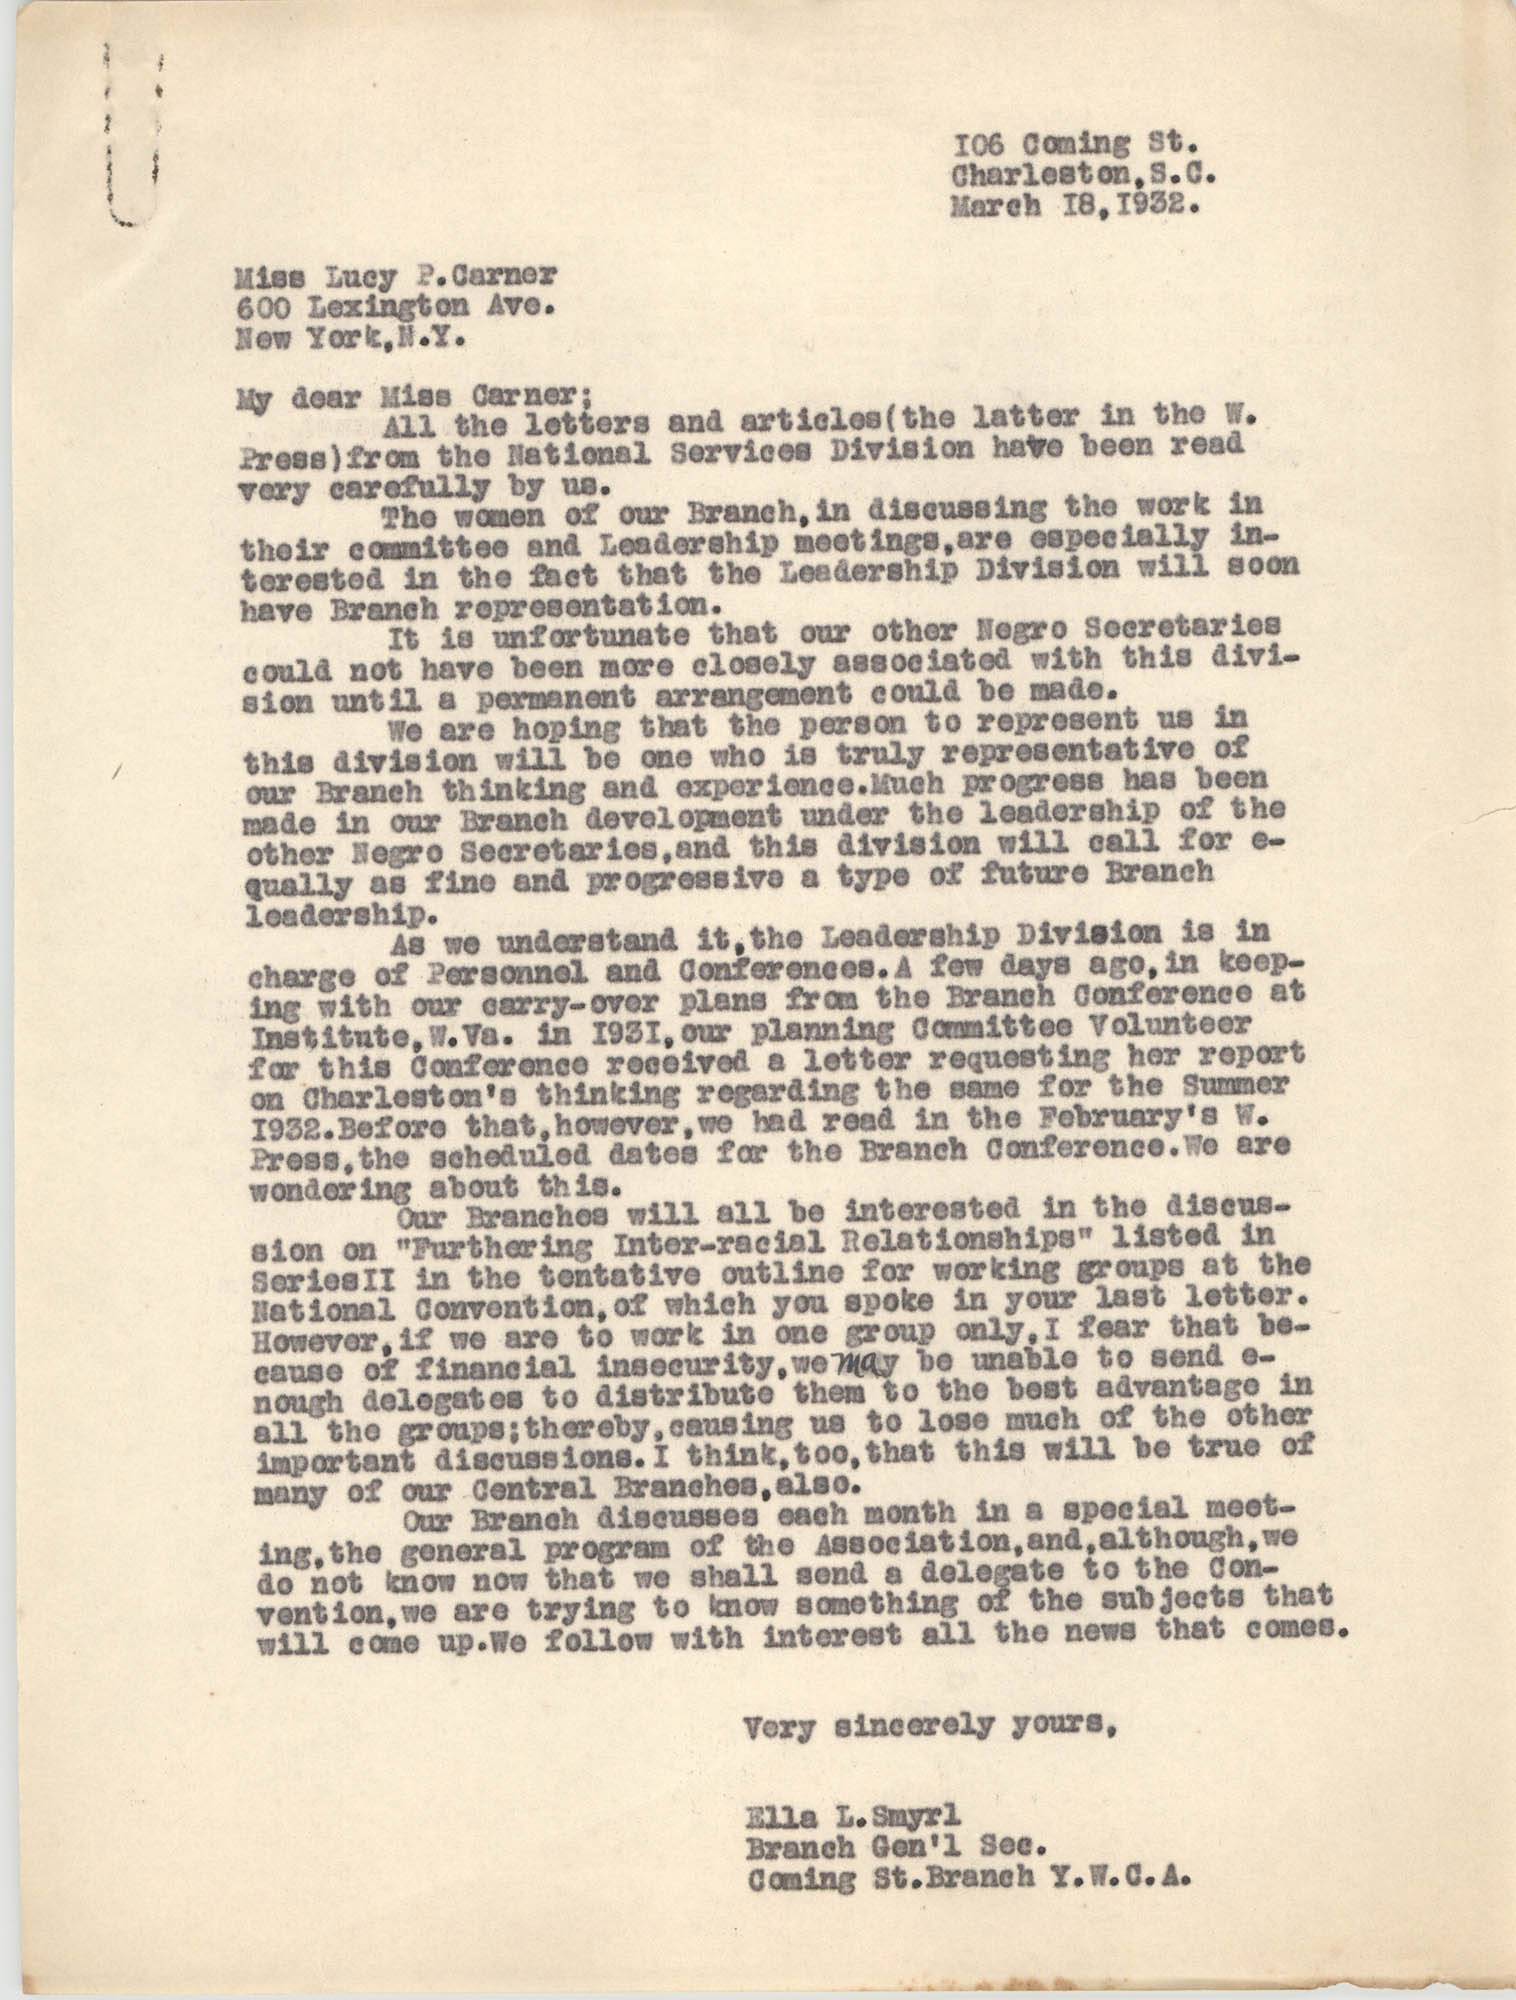 Letter from Ella L. Smyrl to Lucy P. Carner, March 18, 1932